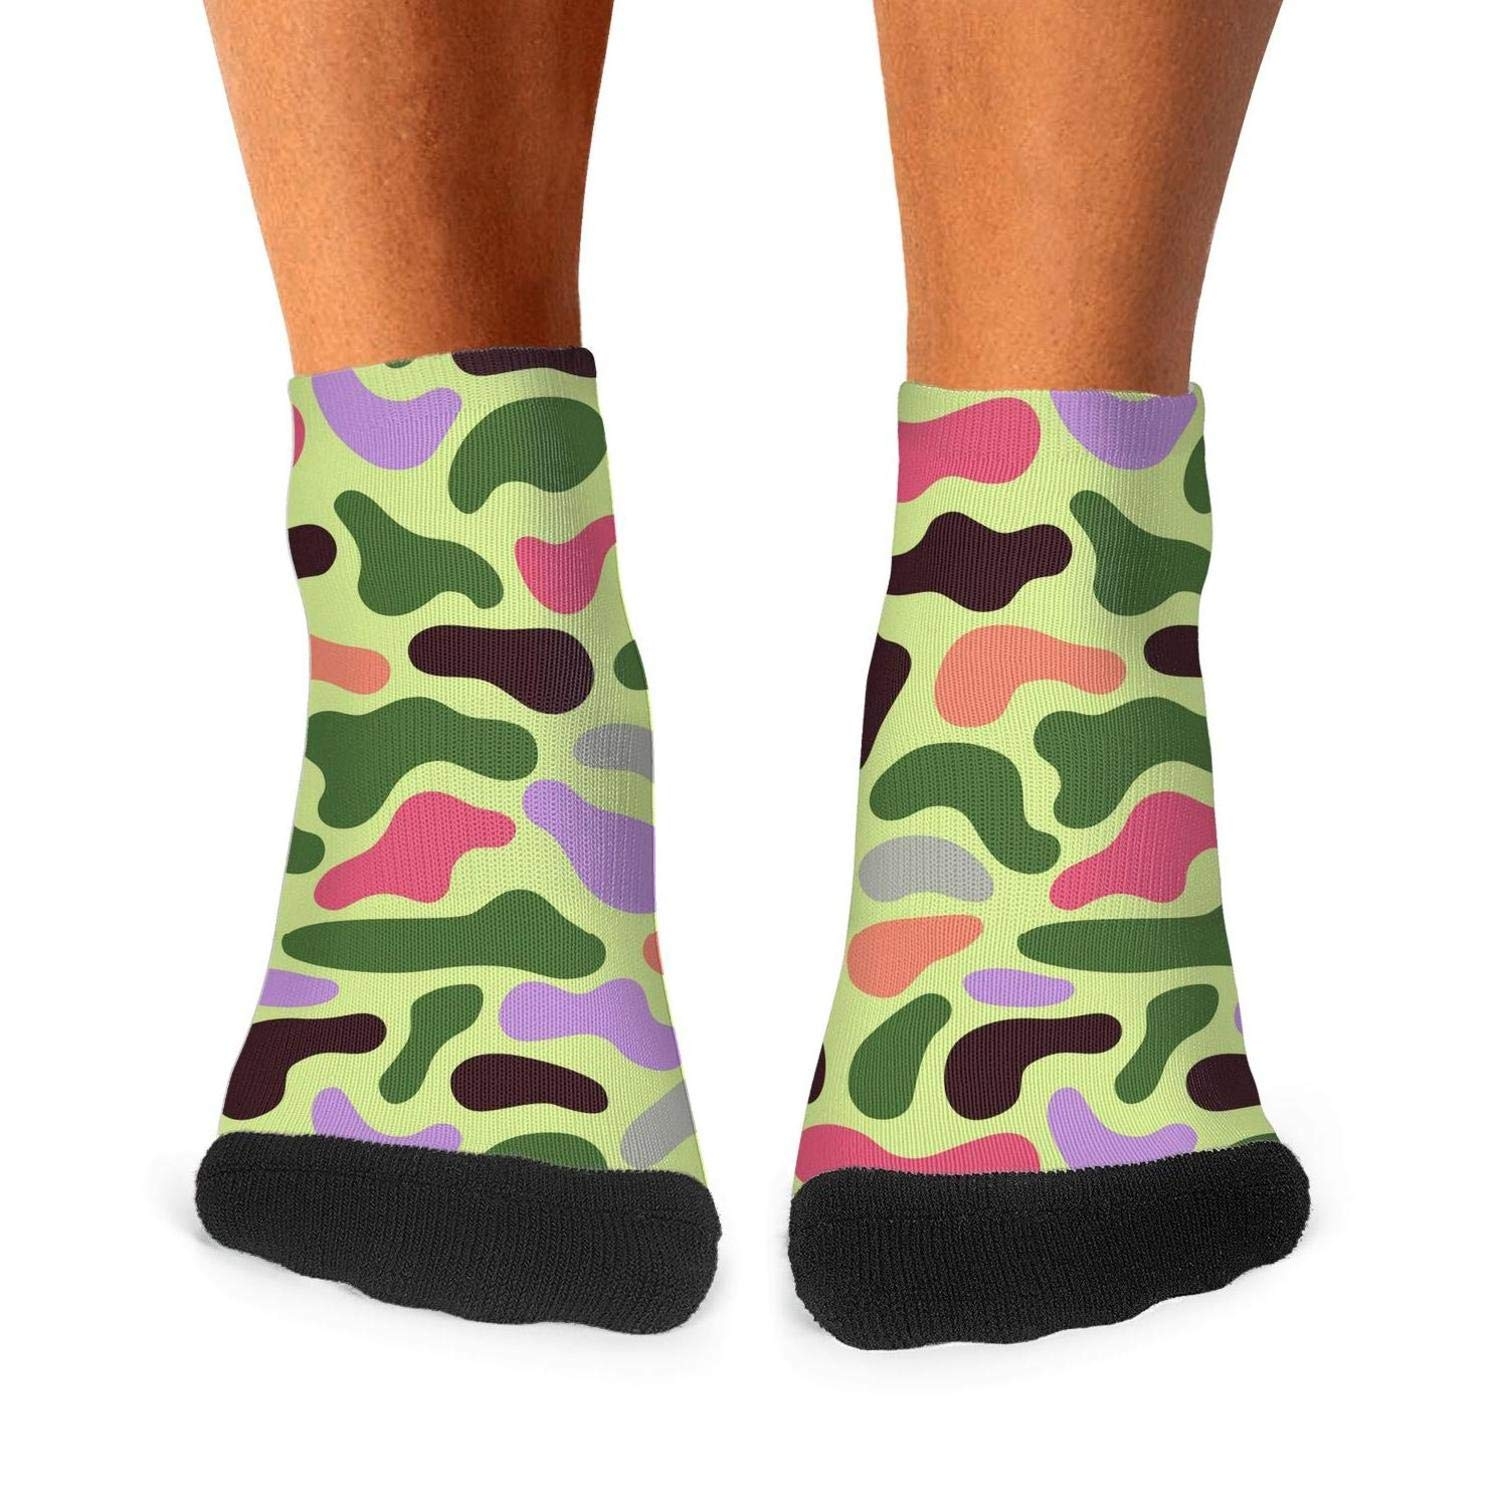 Floowyerion Mens colorful camo Novelty Sports Socks Crazy Funny Crew Tube Socks